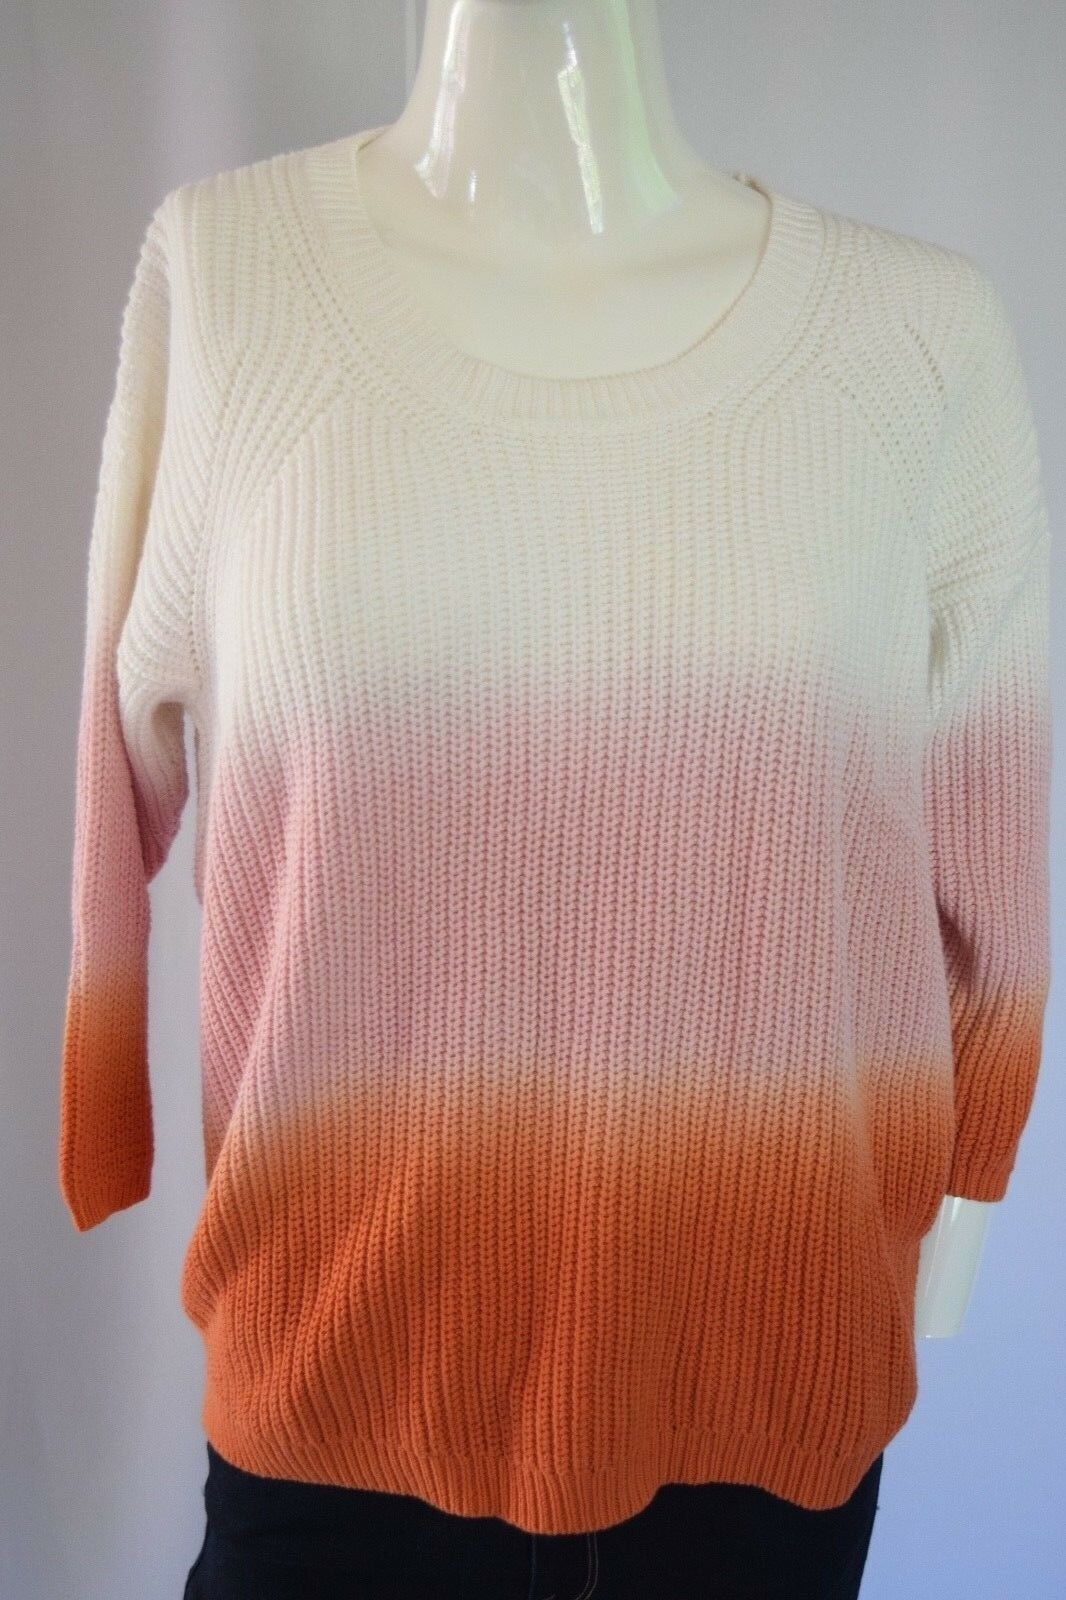 DIESEL  CHANDRA KNITWEAR SWEATER WOMEN SZ S in Multicolor white pink orange